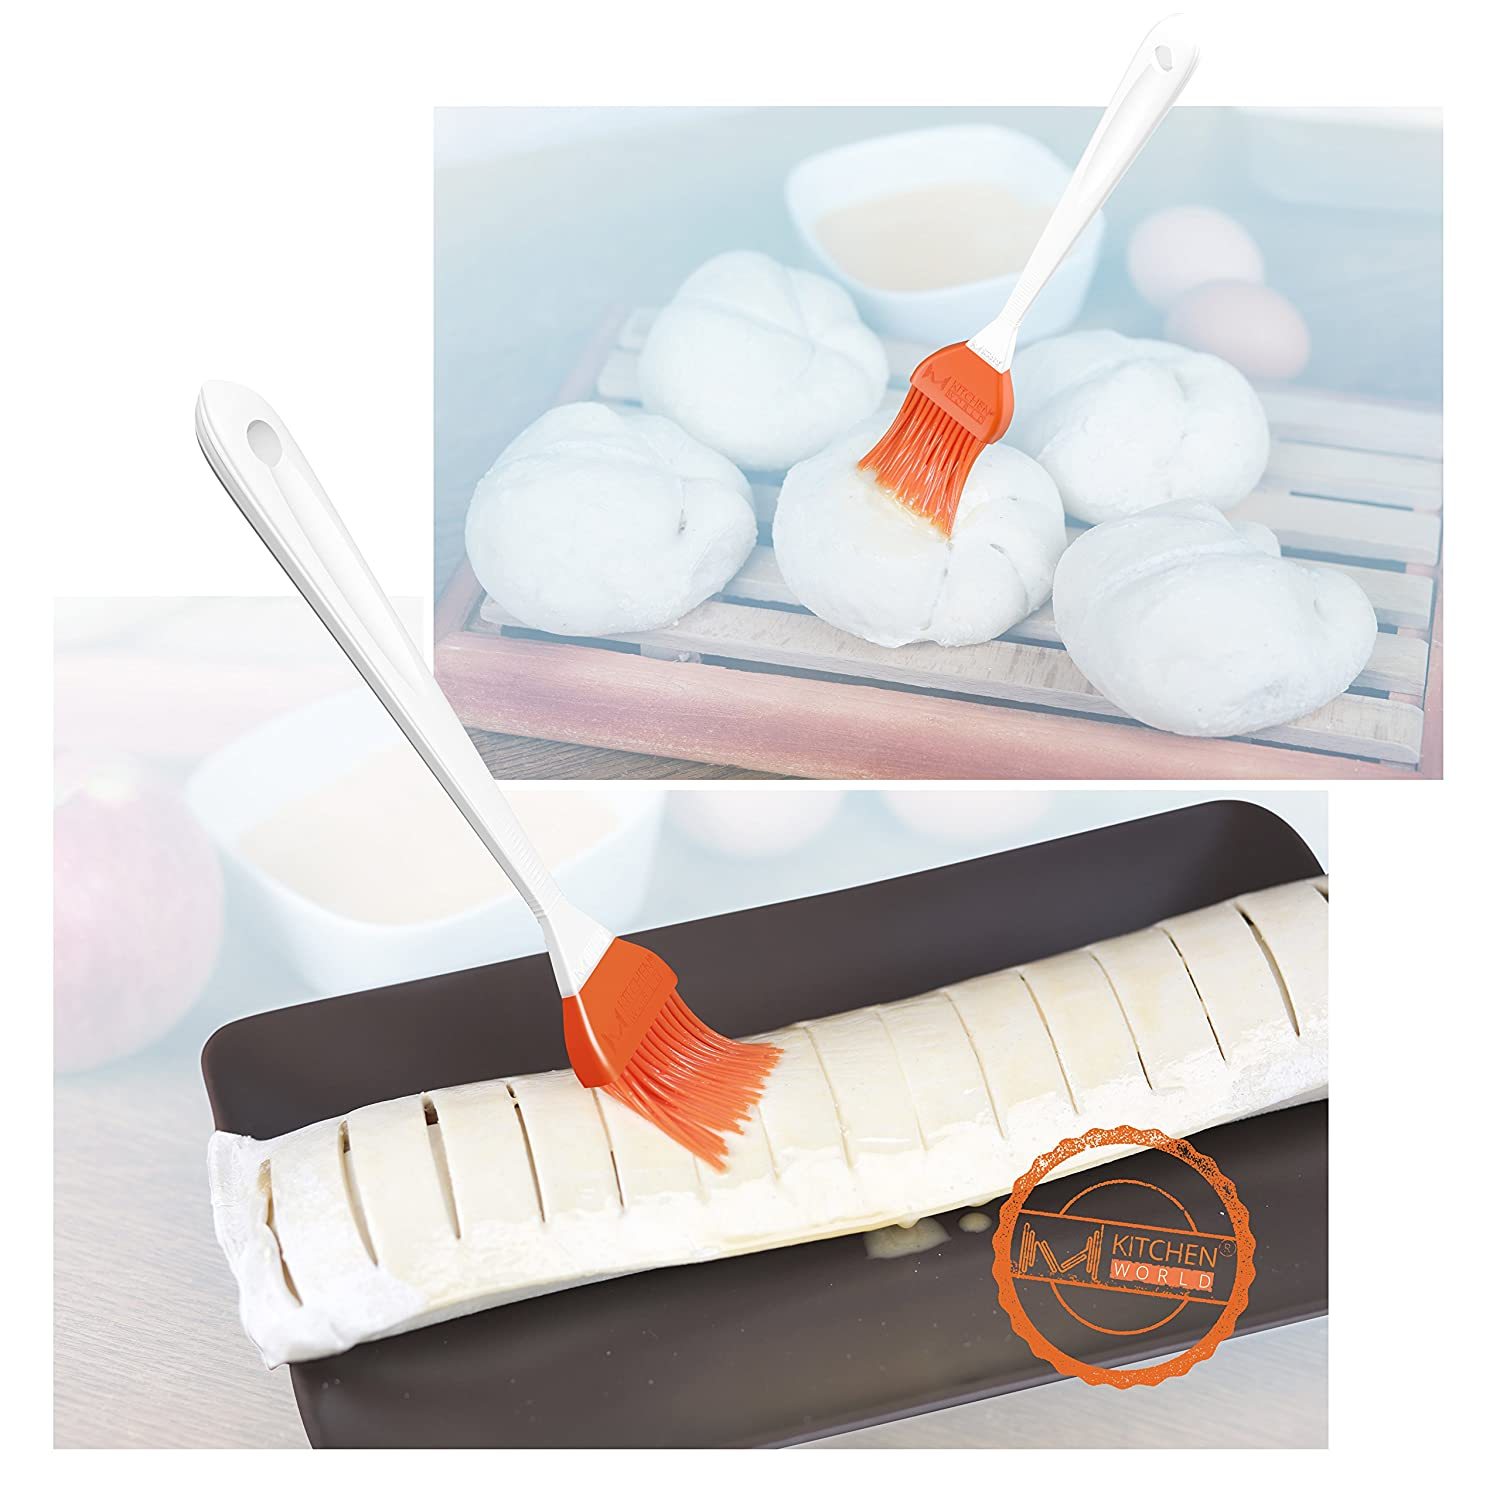 M KITCHEN WORLD Silicone Basting  BBQ Pastry and Oil Brush Orange Turkey Baster Barbecue Utensil